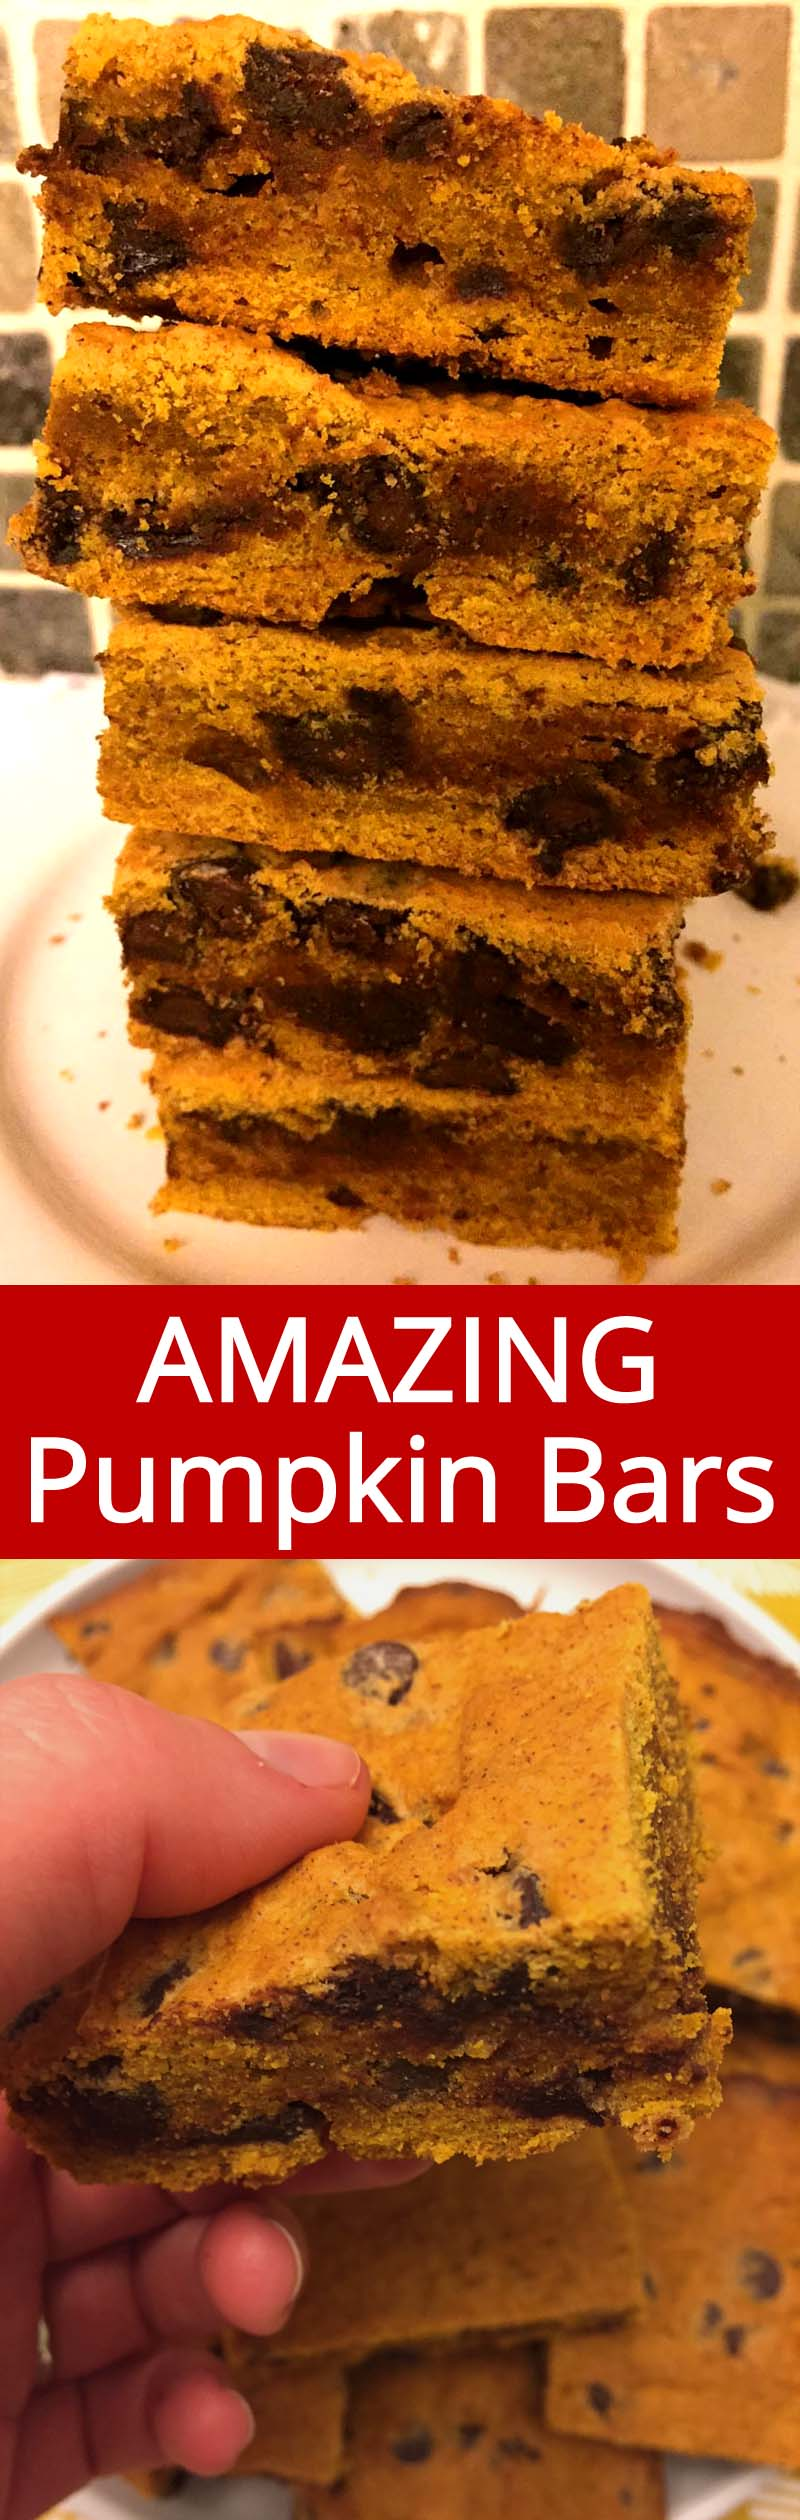 These chocolate chip pumpkin bars are truly amazing! Best pumpkin squares ever, so easy to make and so delicious! These pumpkin bars are my favorite pumpkin dessert recipe!